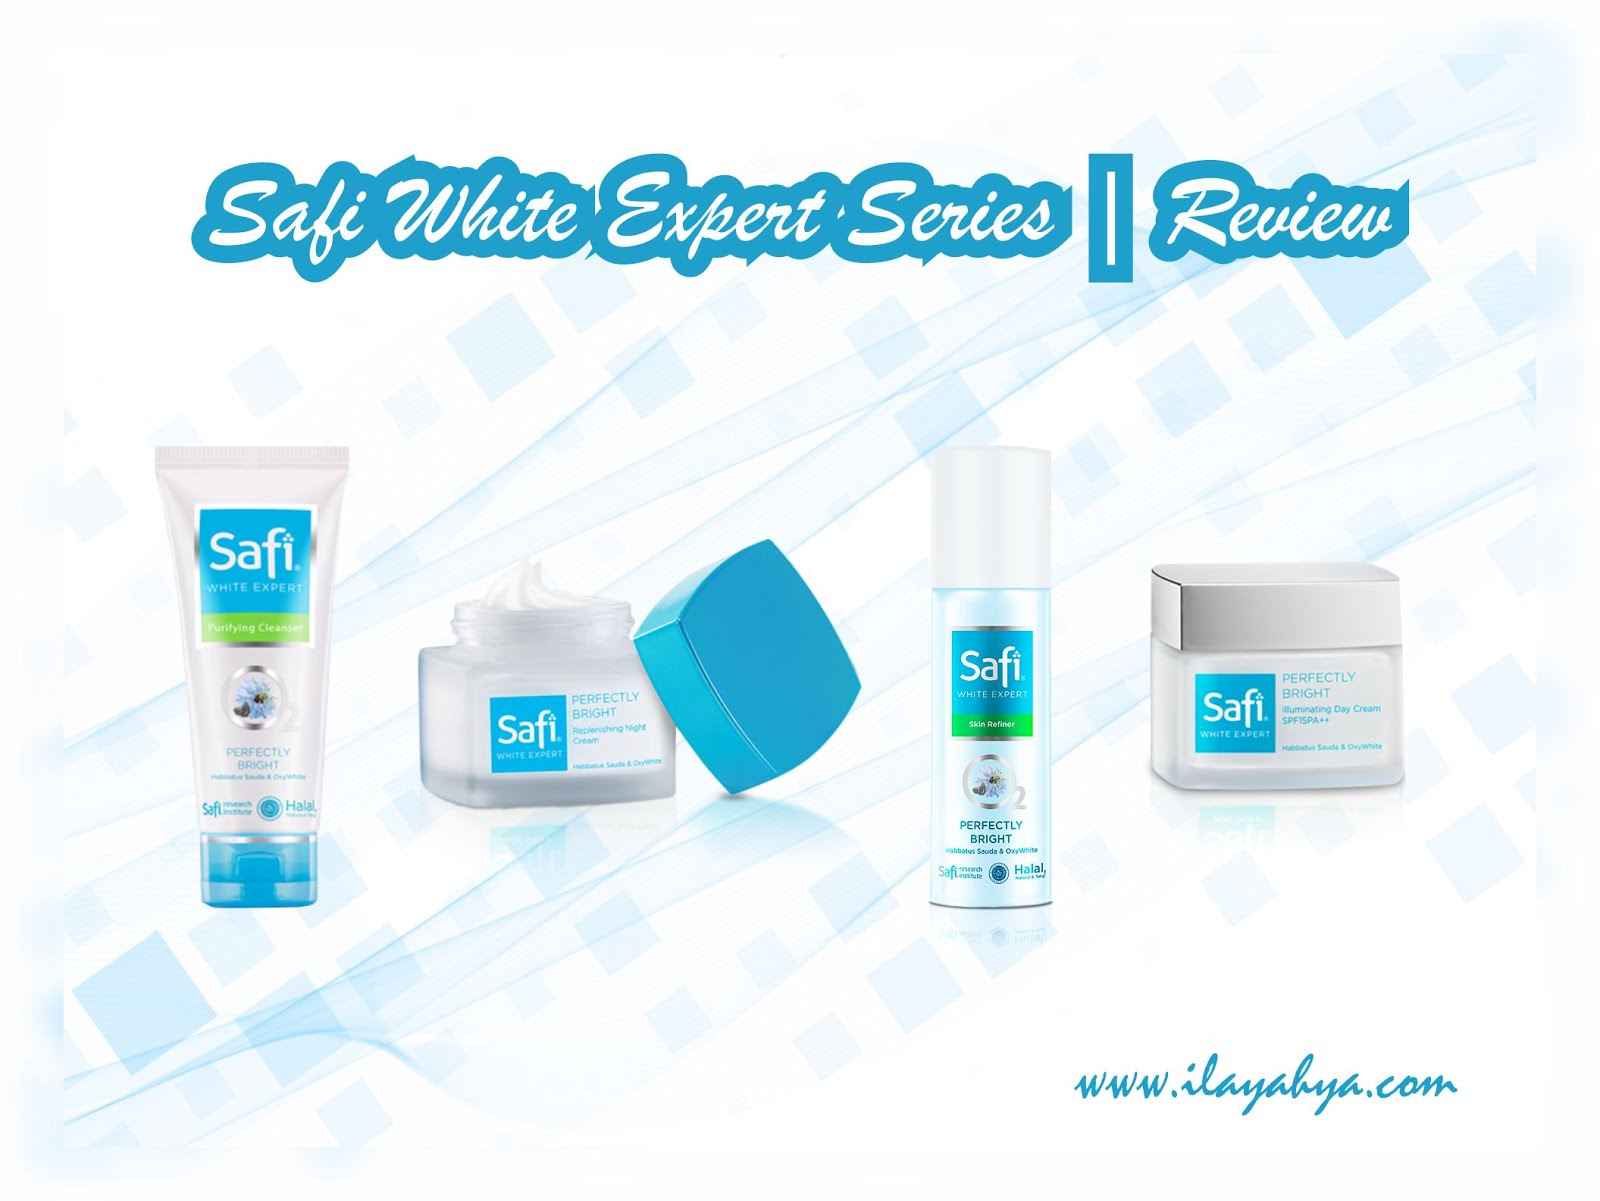 Safi White Expert Series | Review